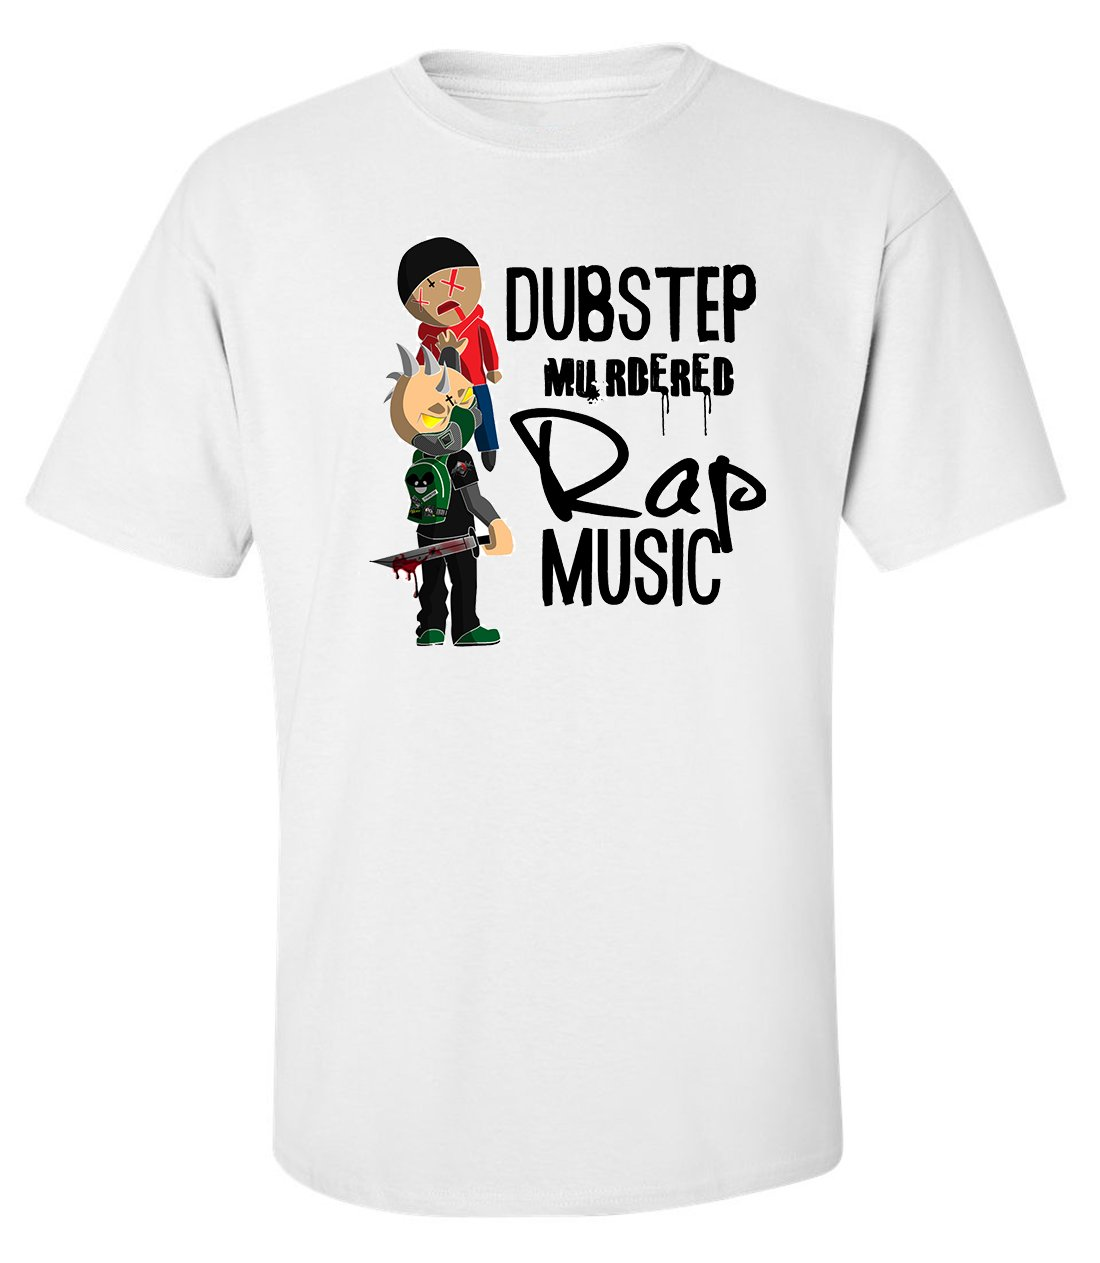 Dubstep murdered rap music men printed white cotton t-shirt size 2XL